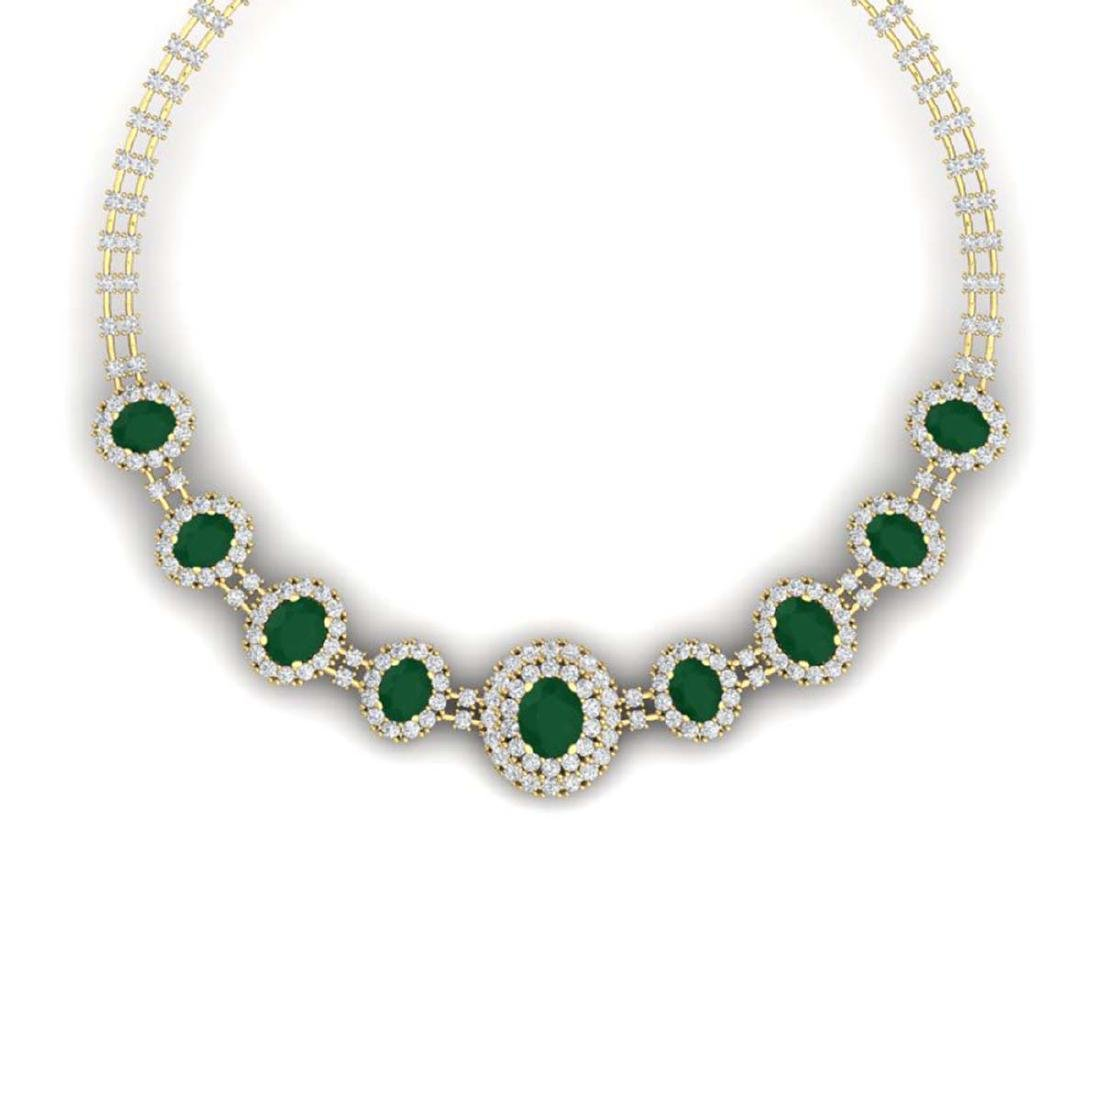 45.69 ctw Emerald & VS Diamond Necklace 18K Yellow Gold